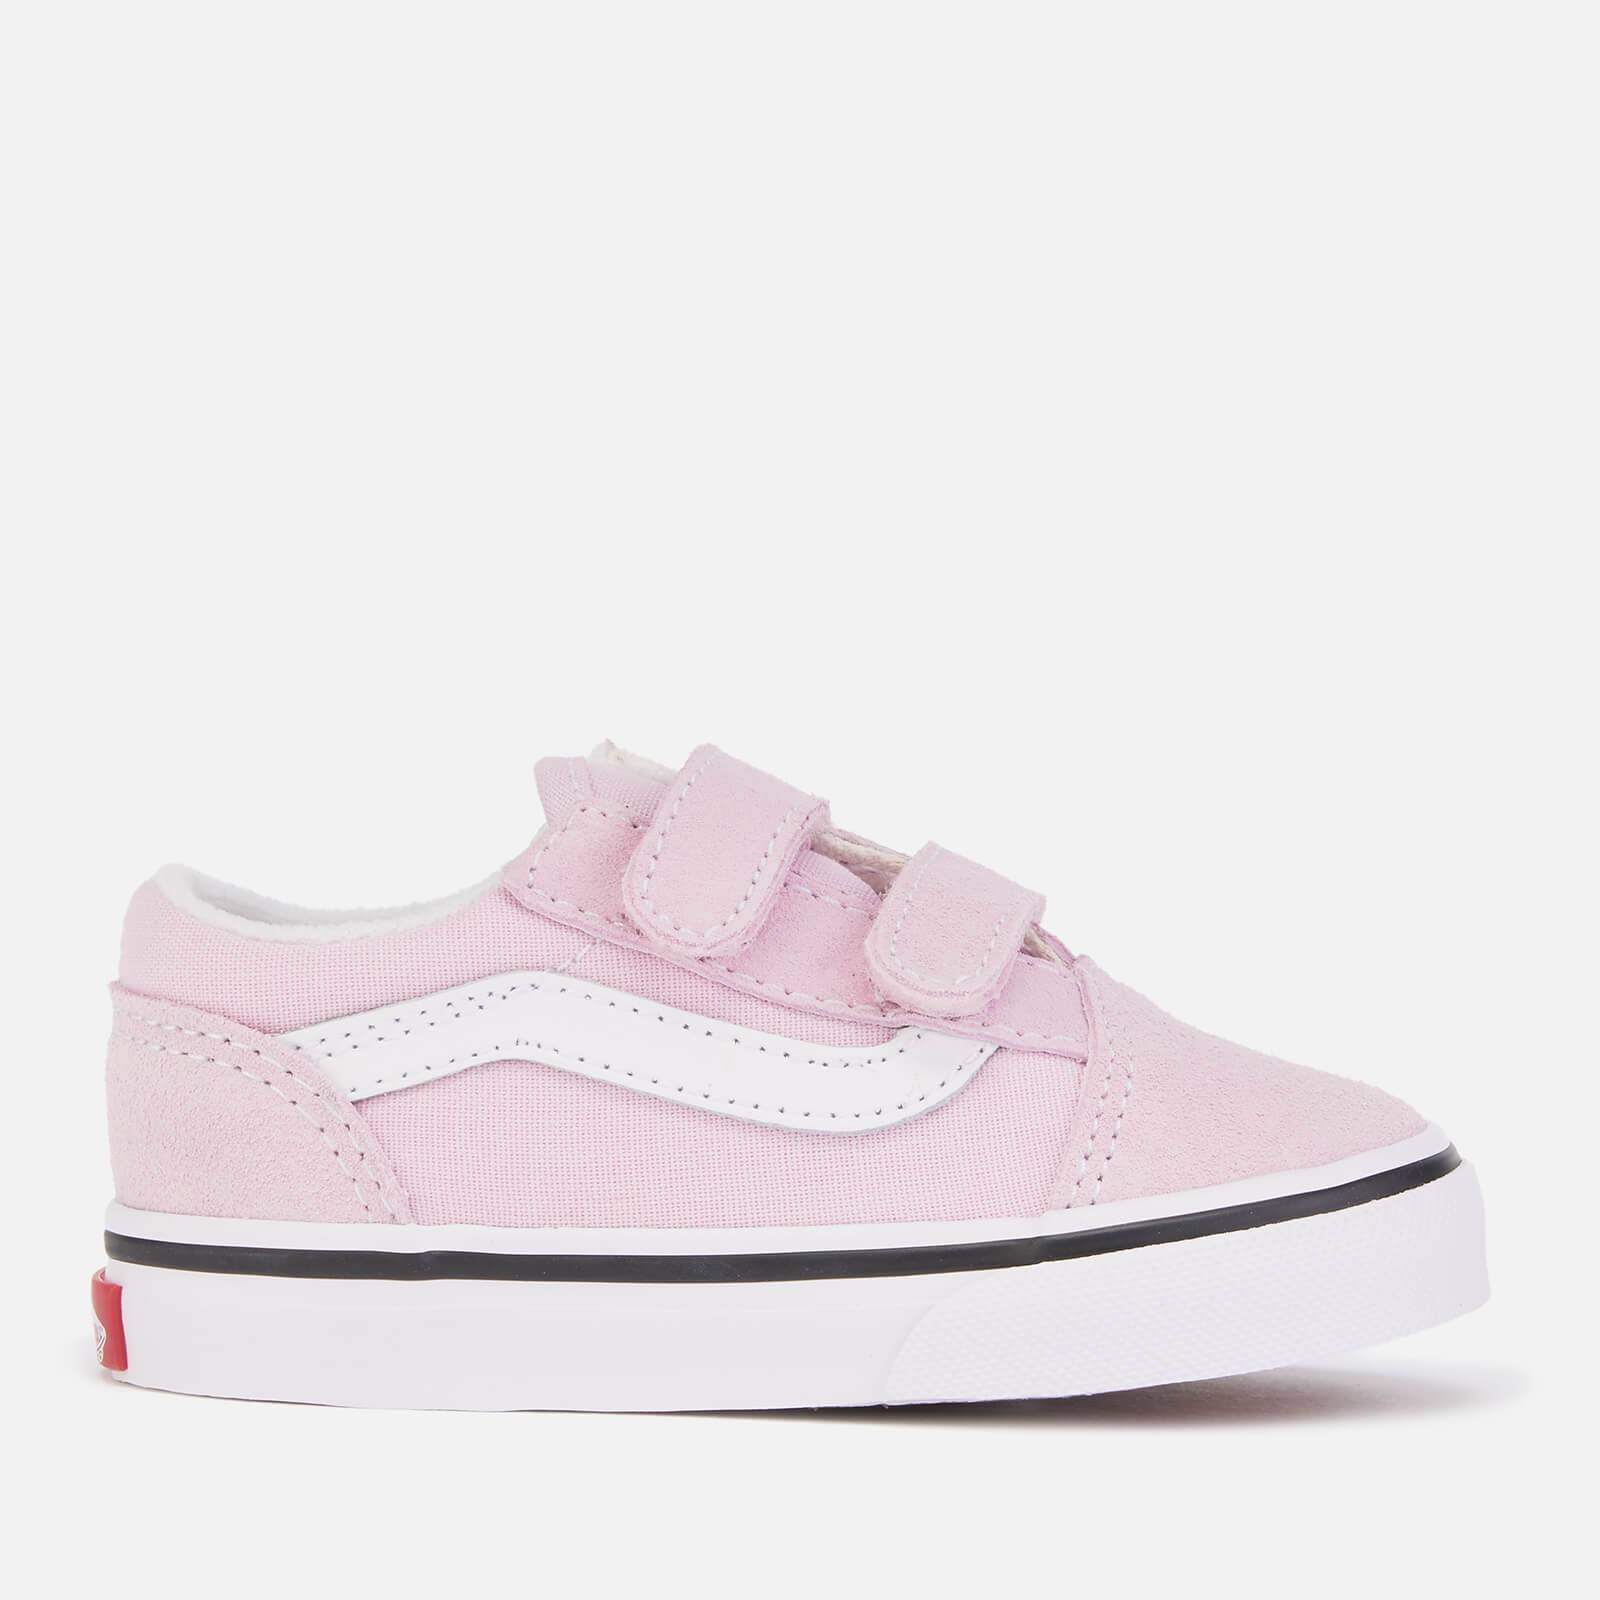 Vans Toddlers' Old Skool Velcro Trainers - Lilac Snow/True White - UK 8 Toddler